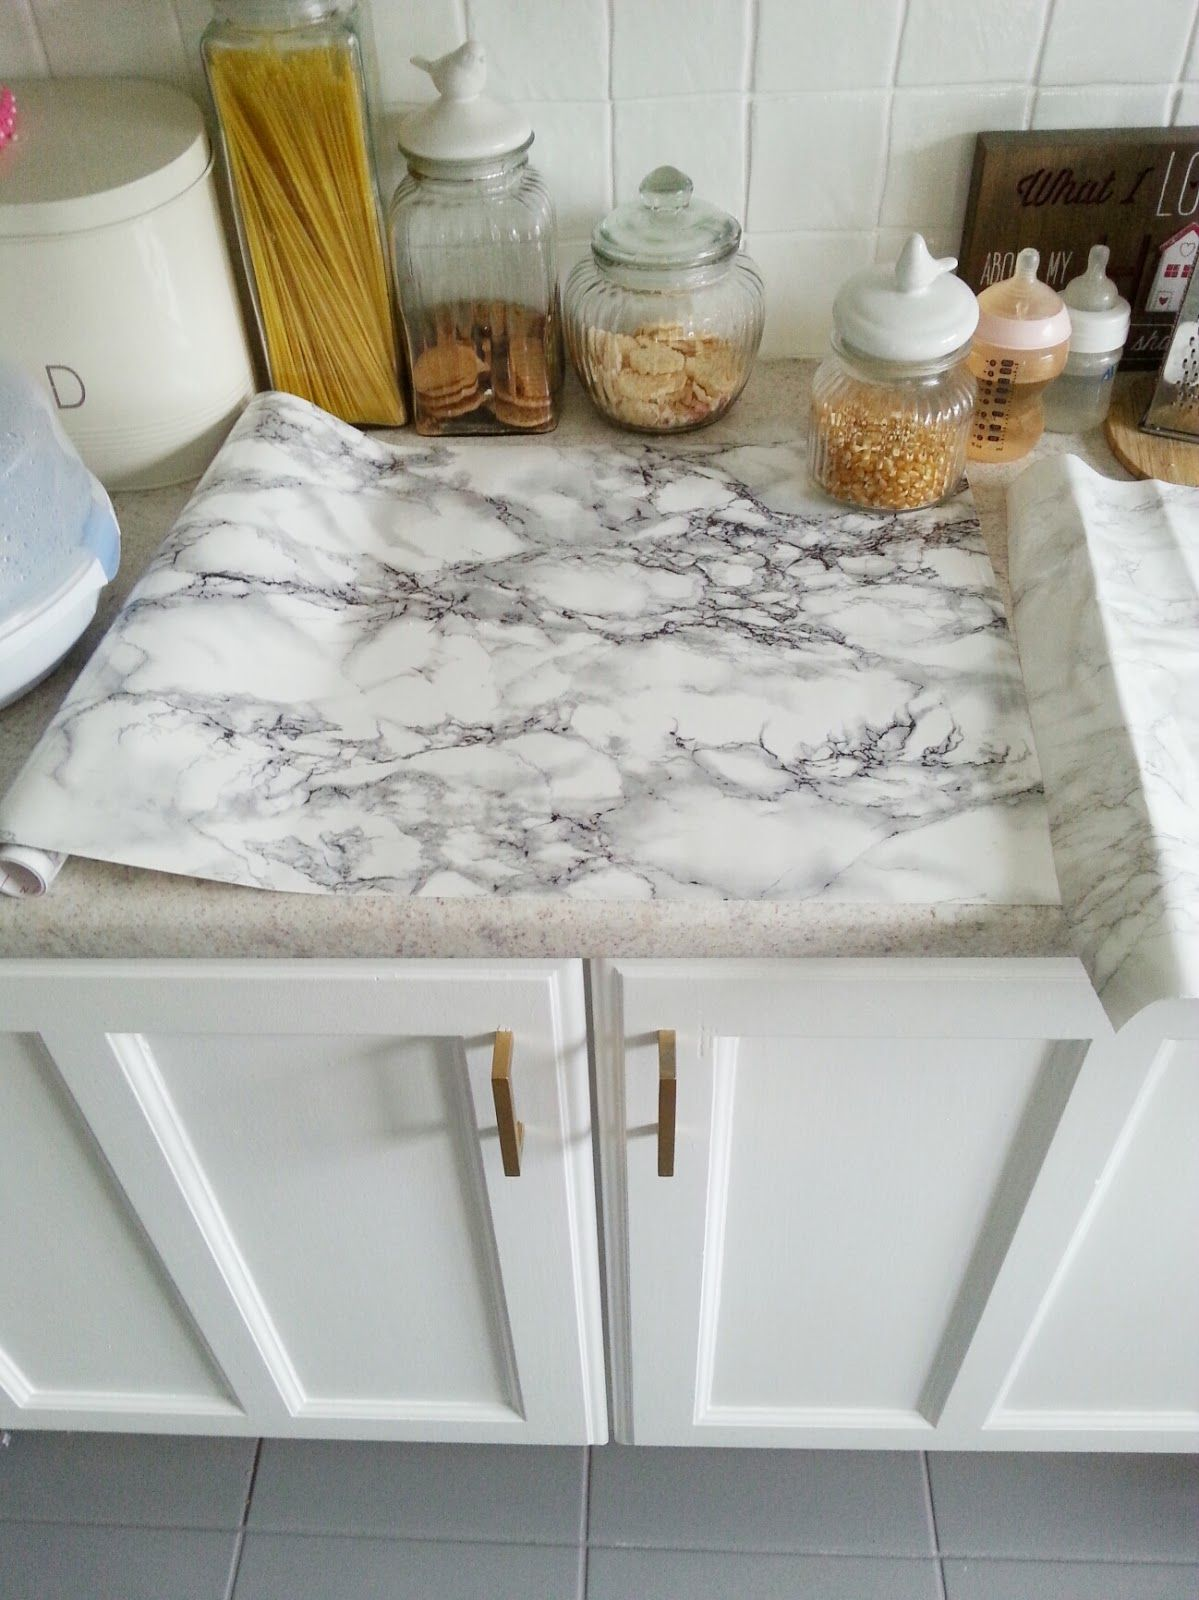 marble kitchen countertops Faux marble DIY counter tops using contact paper Totally reversible